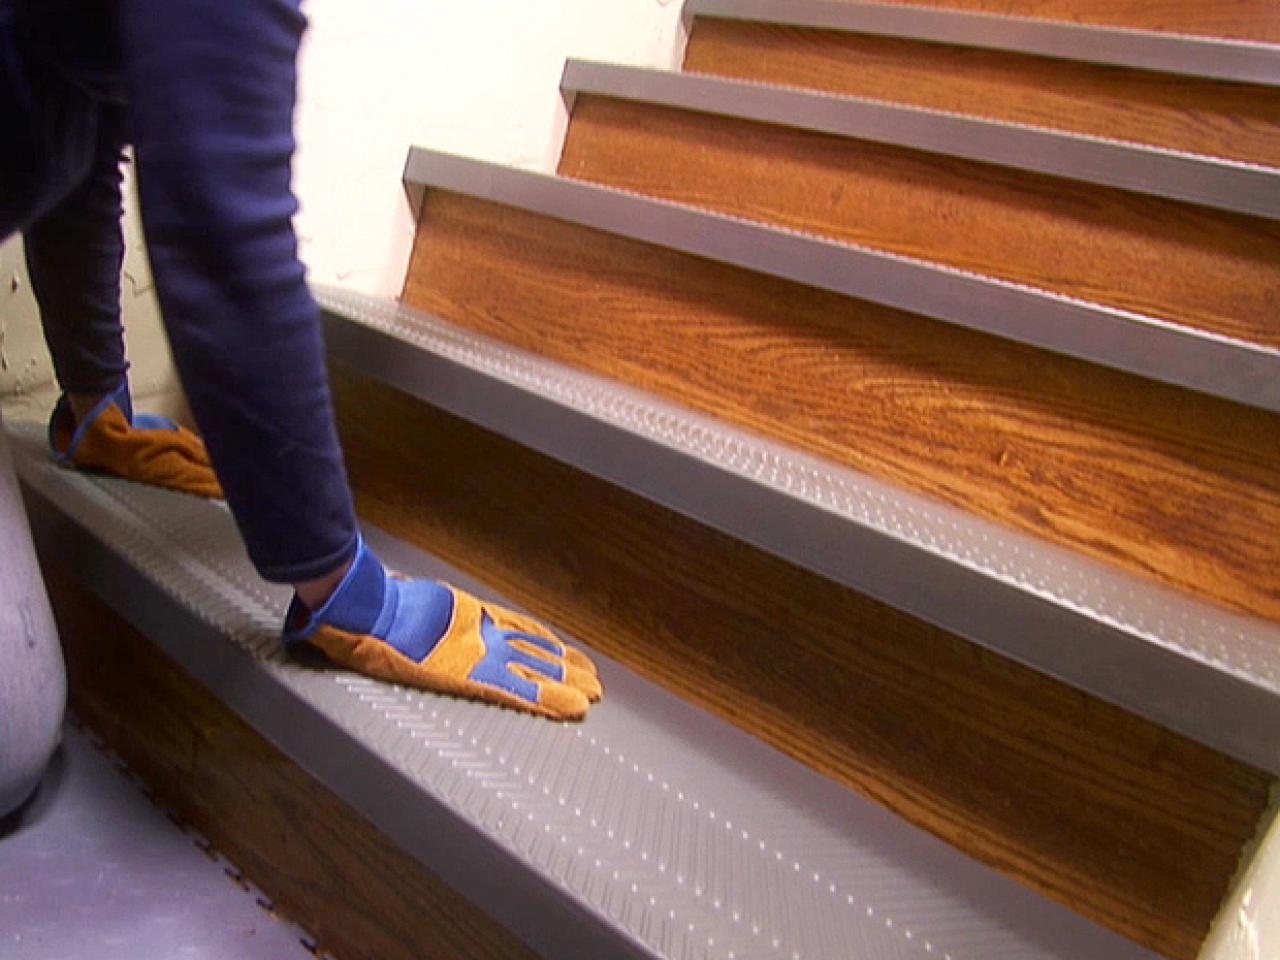 Installing Non Slip Stair Treads How Tos Diy For Non Skid Stair Treads Carpet (Image 10 of 15)